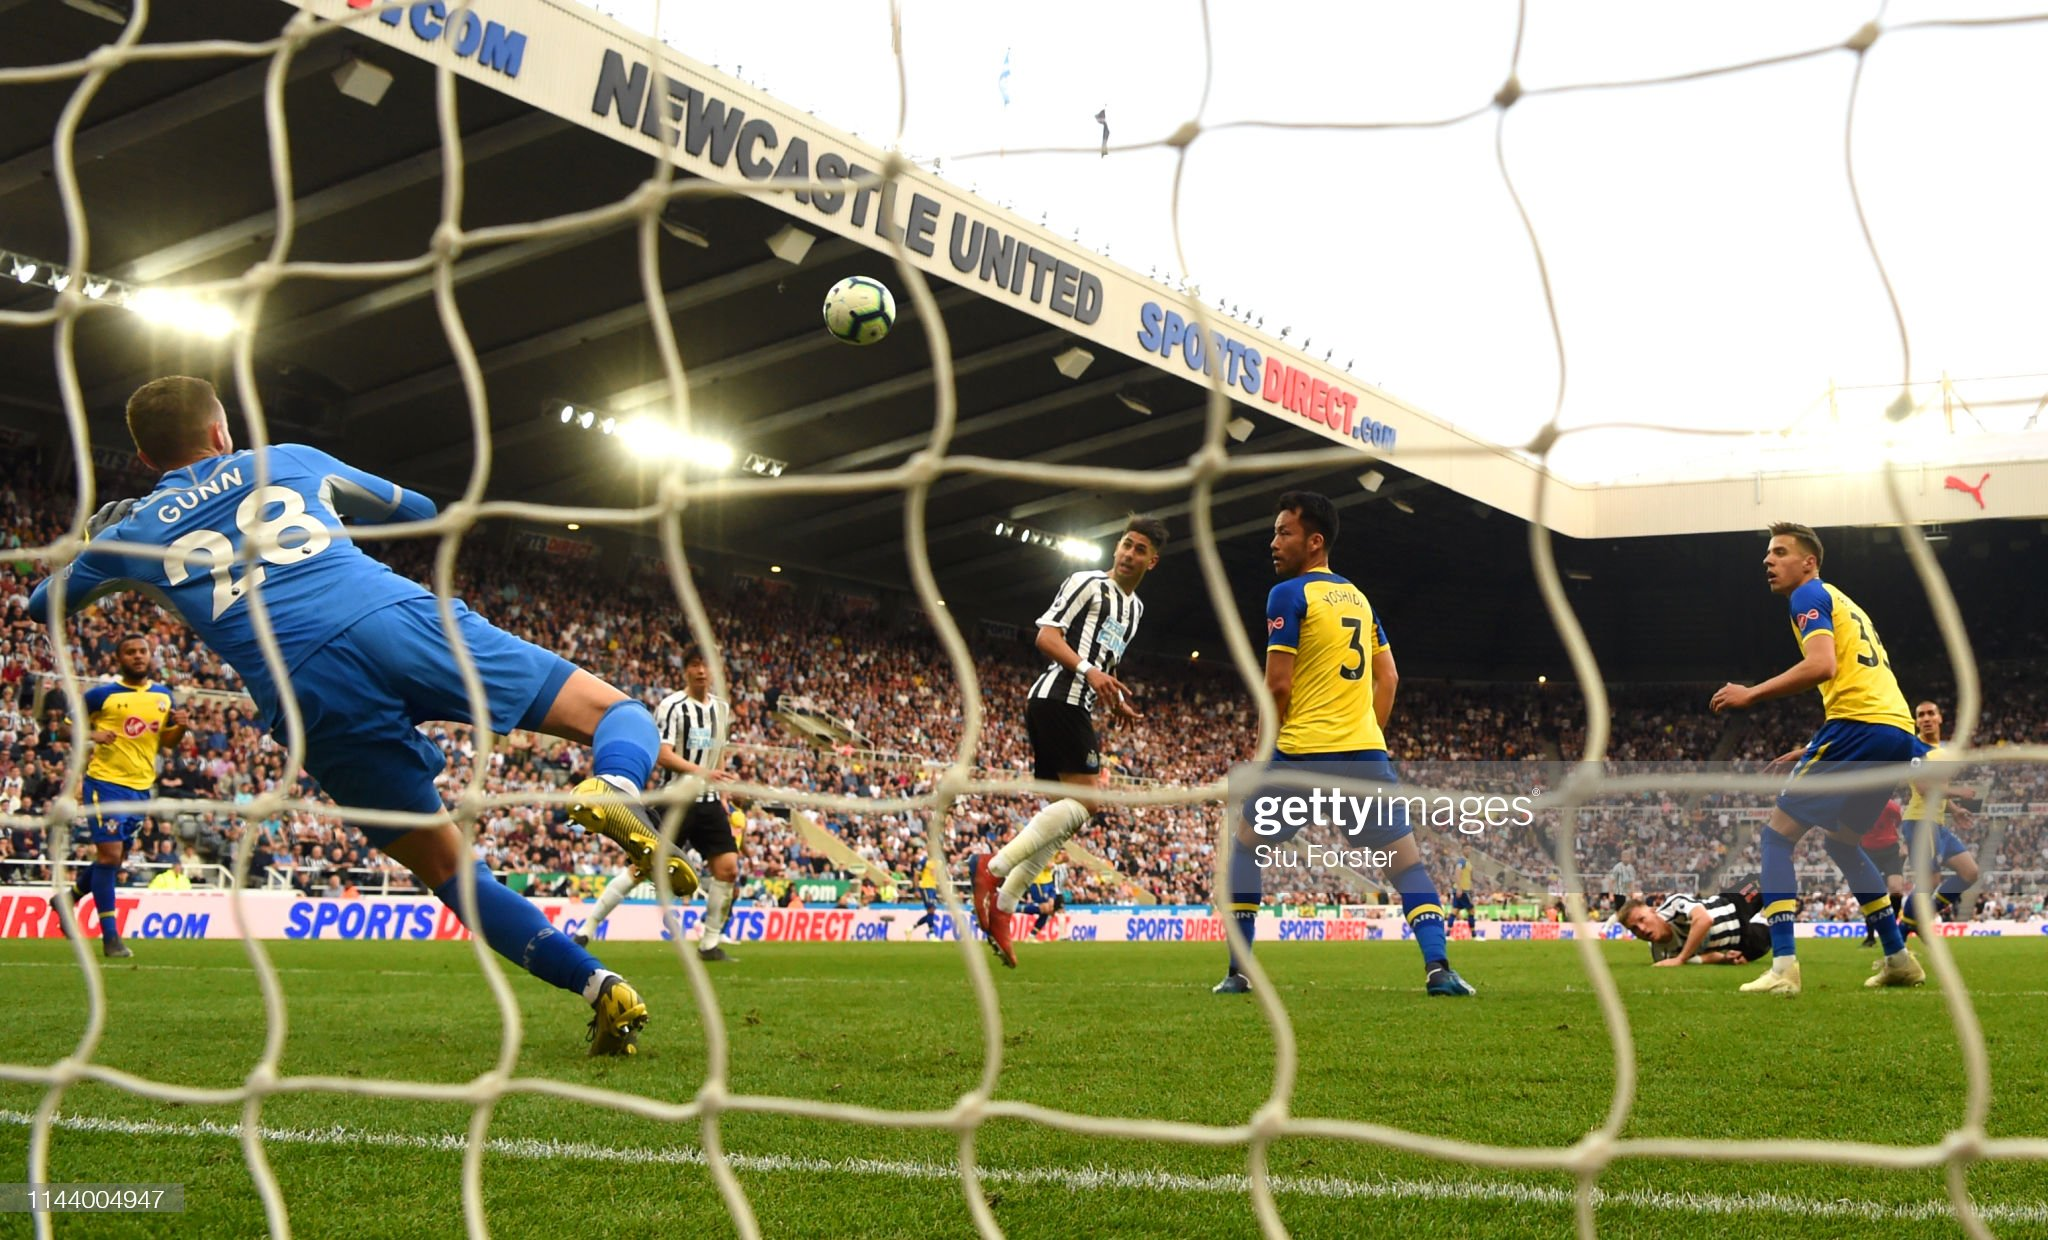 Newcastle United v Southampton FC - Premier League : News Photo